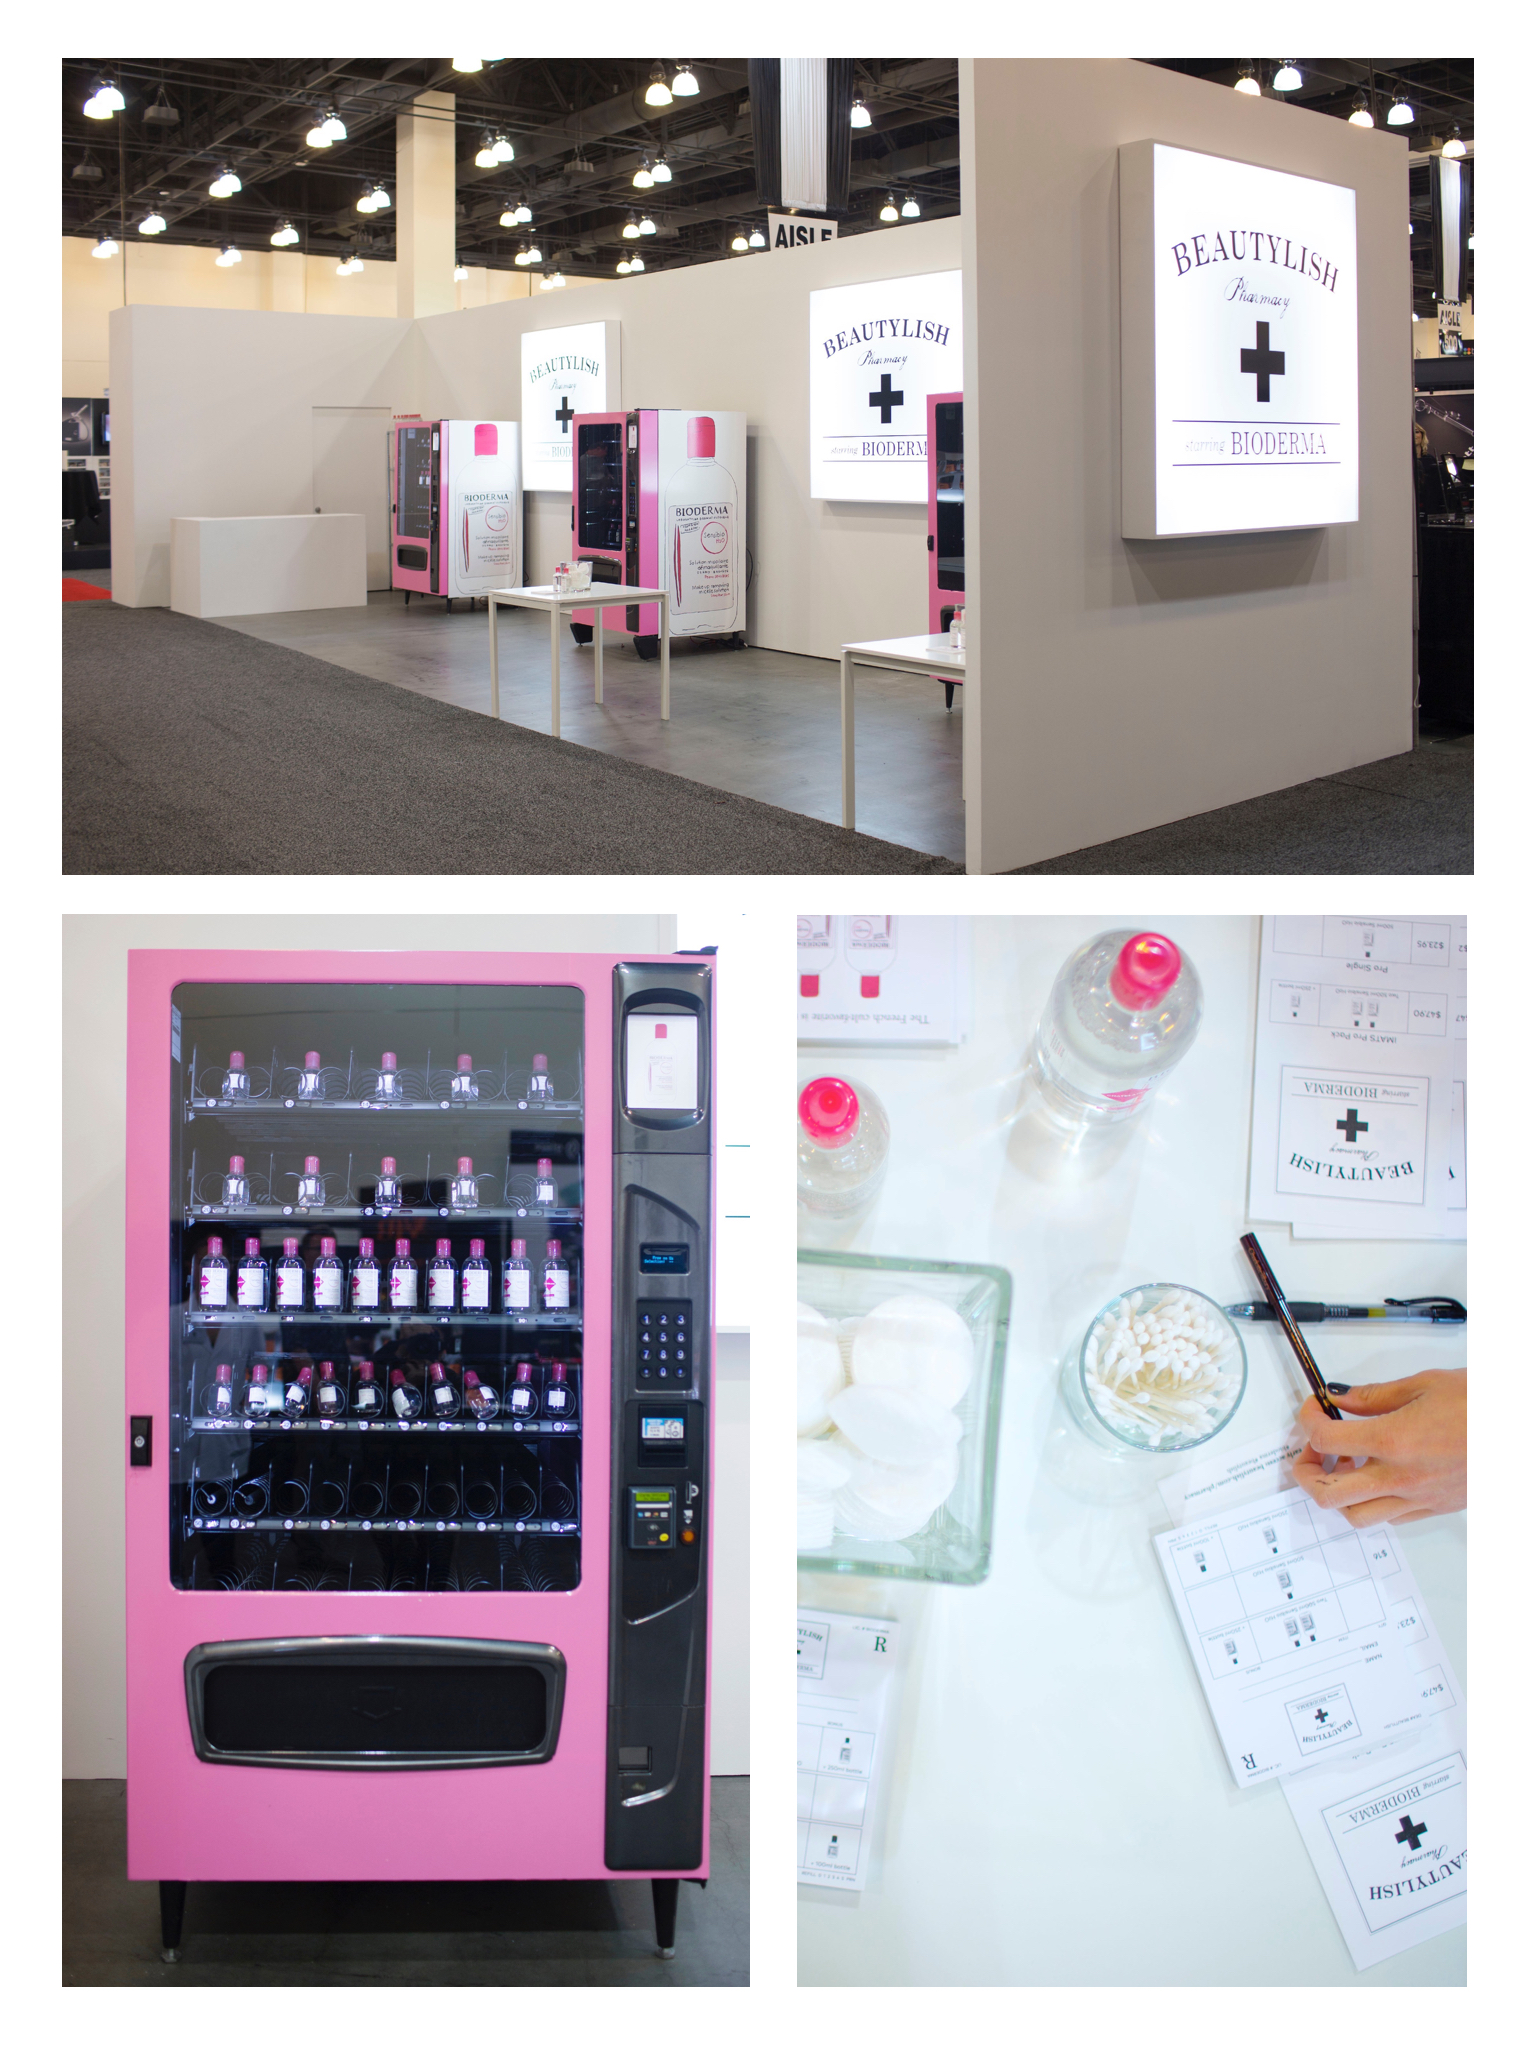 beautylish_bioderma_launch_summary.004.jpg